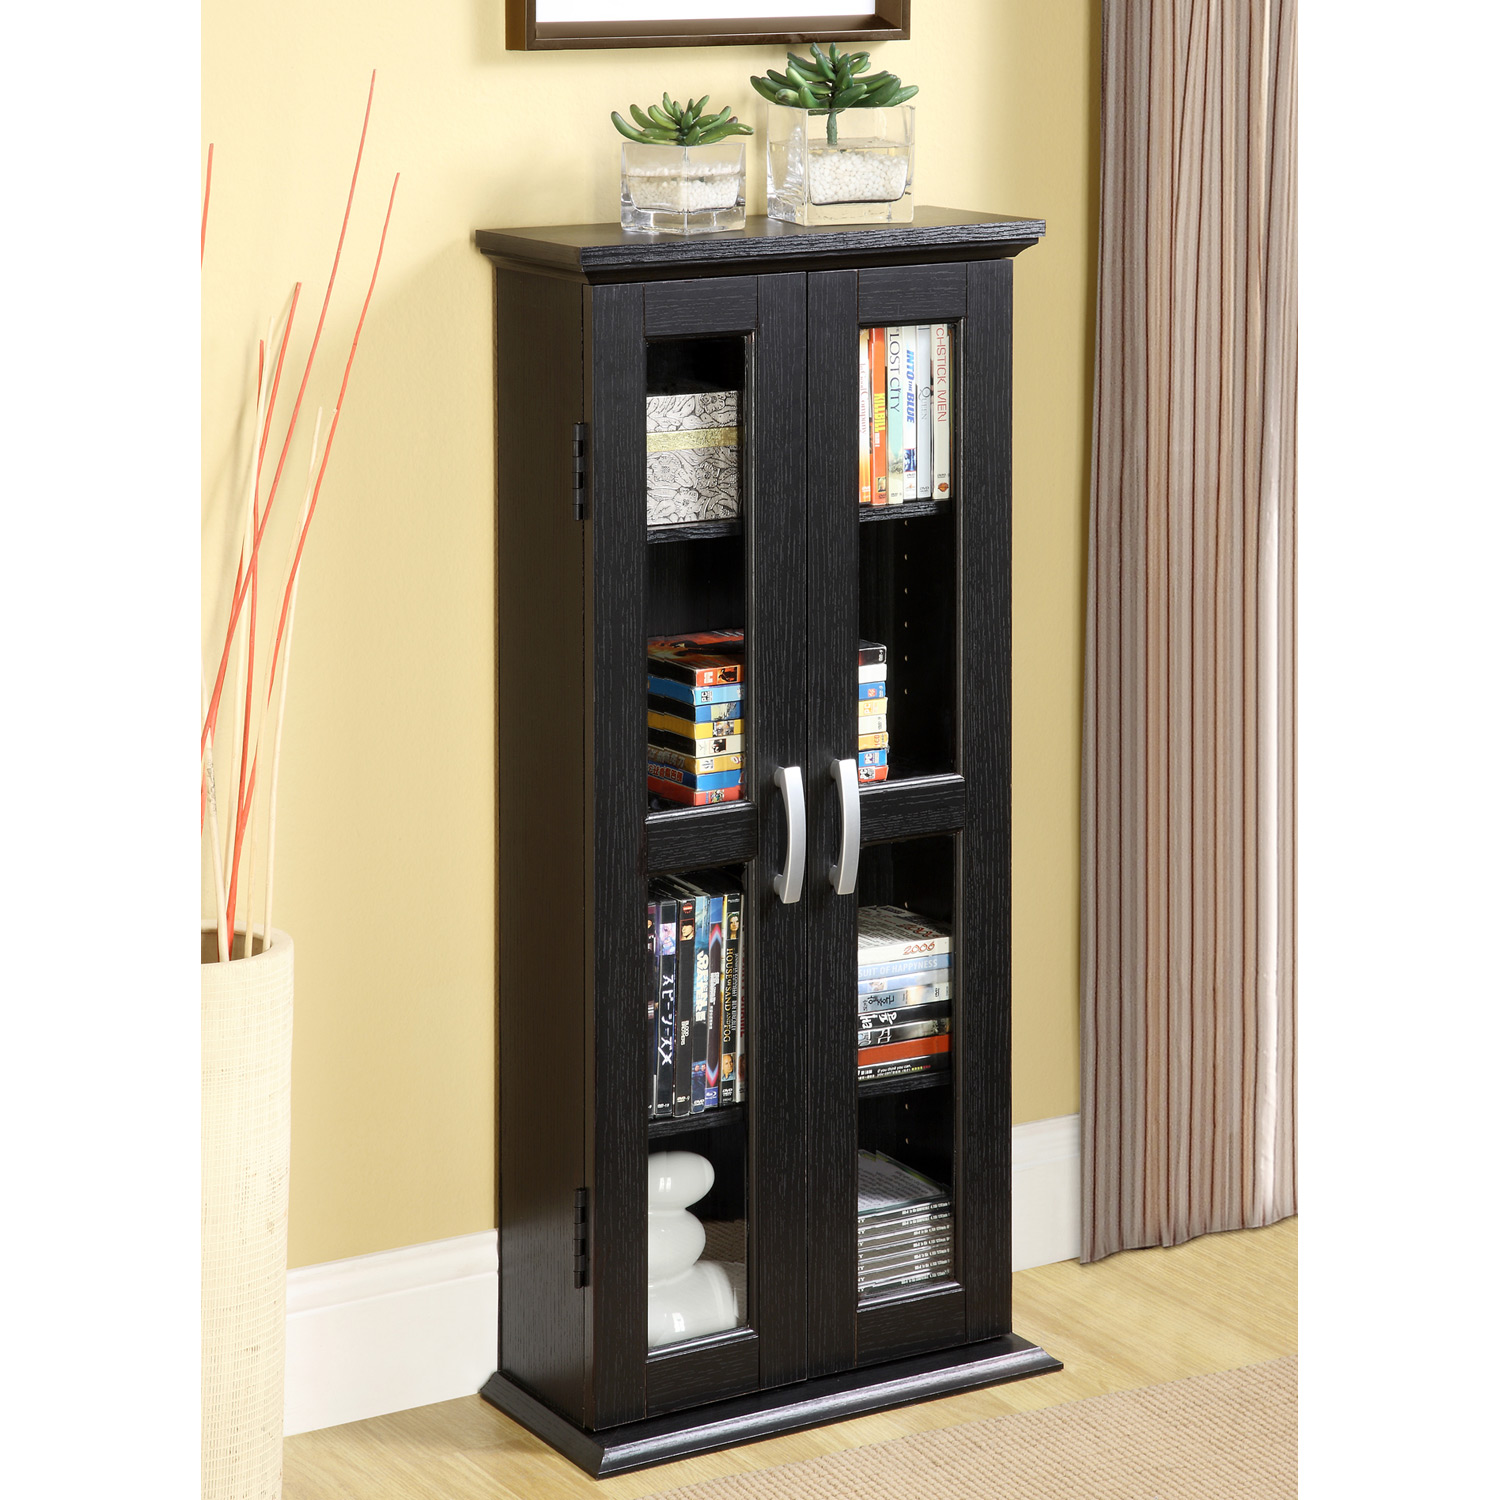 DVD 41 Inch Wood Tower in Black